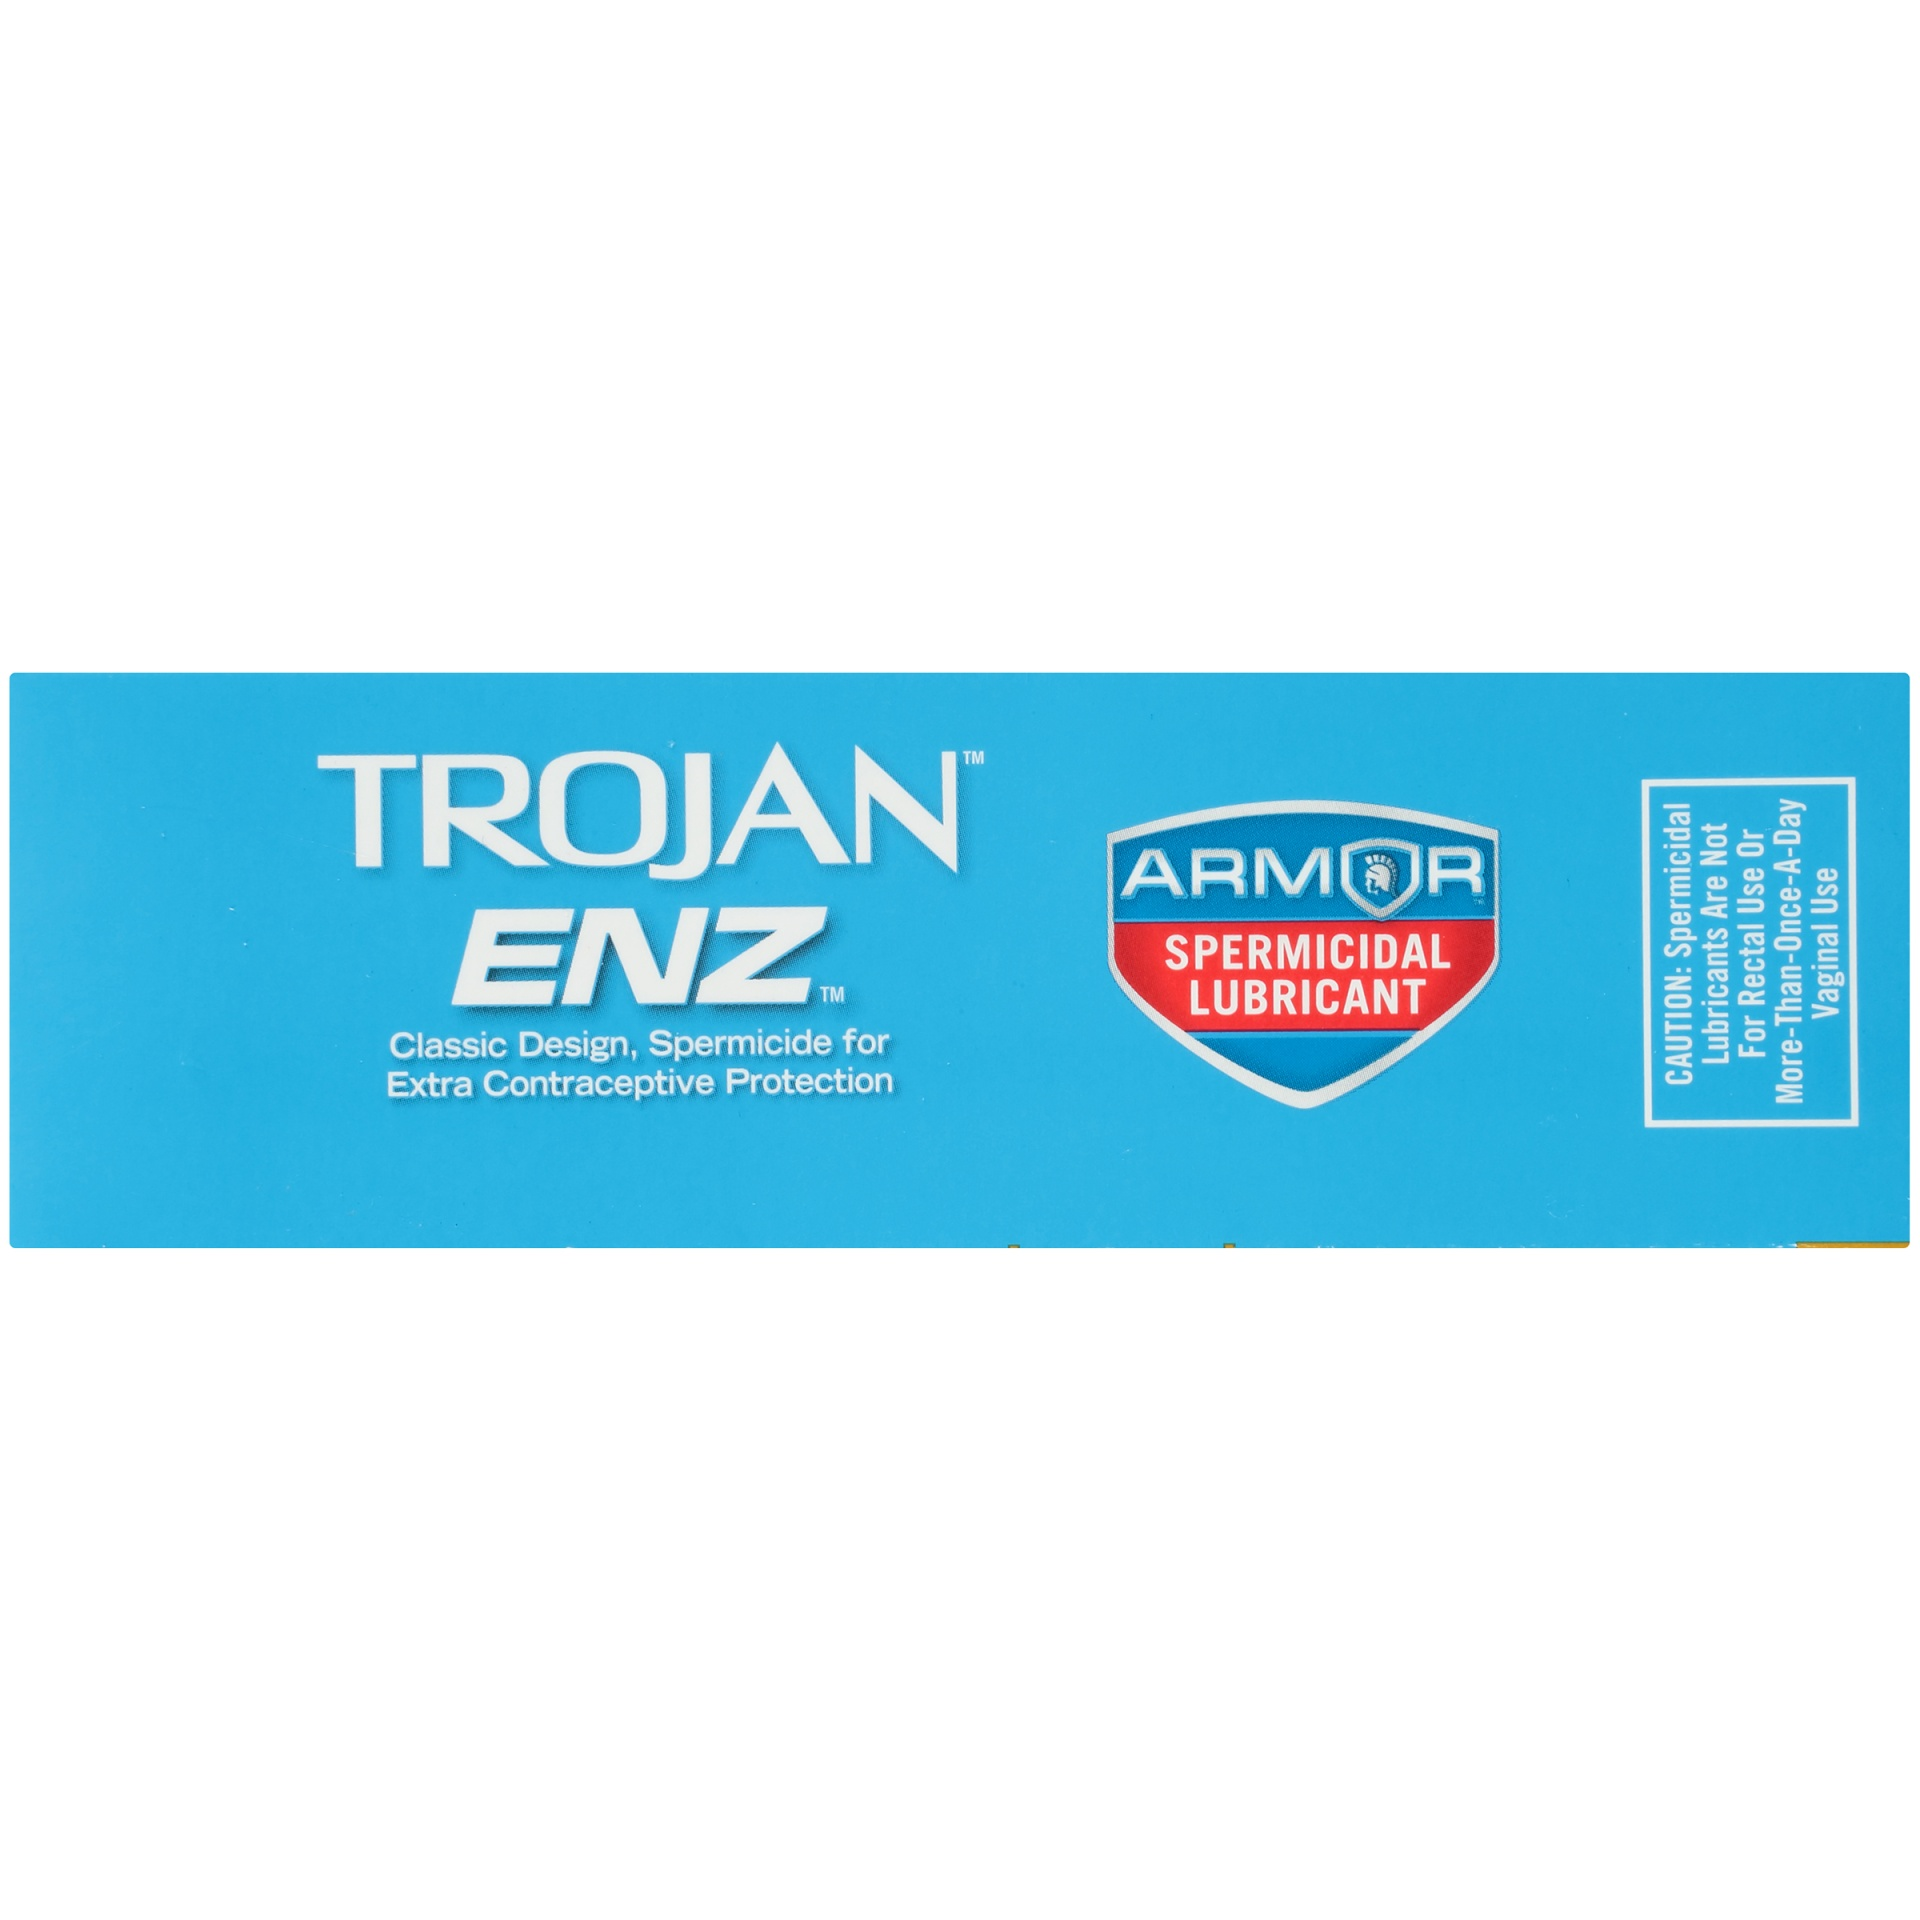 slide 5 of 7, Trojan ENZ Latex Condoms with Spermicidal Lubricant,